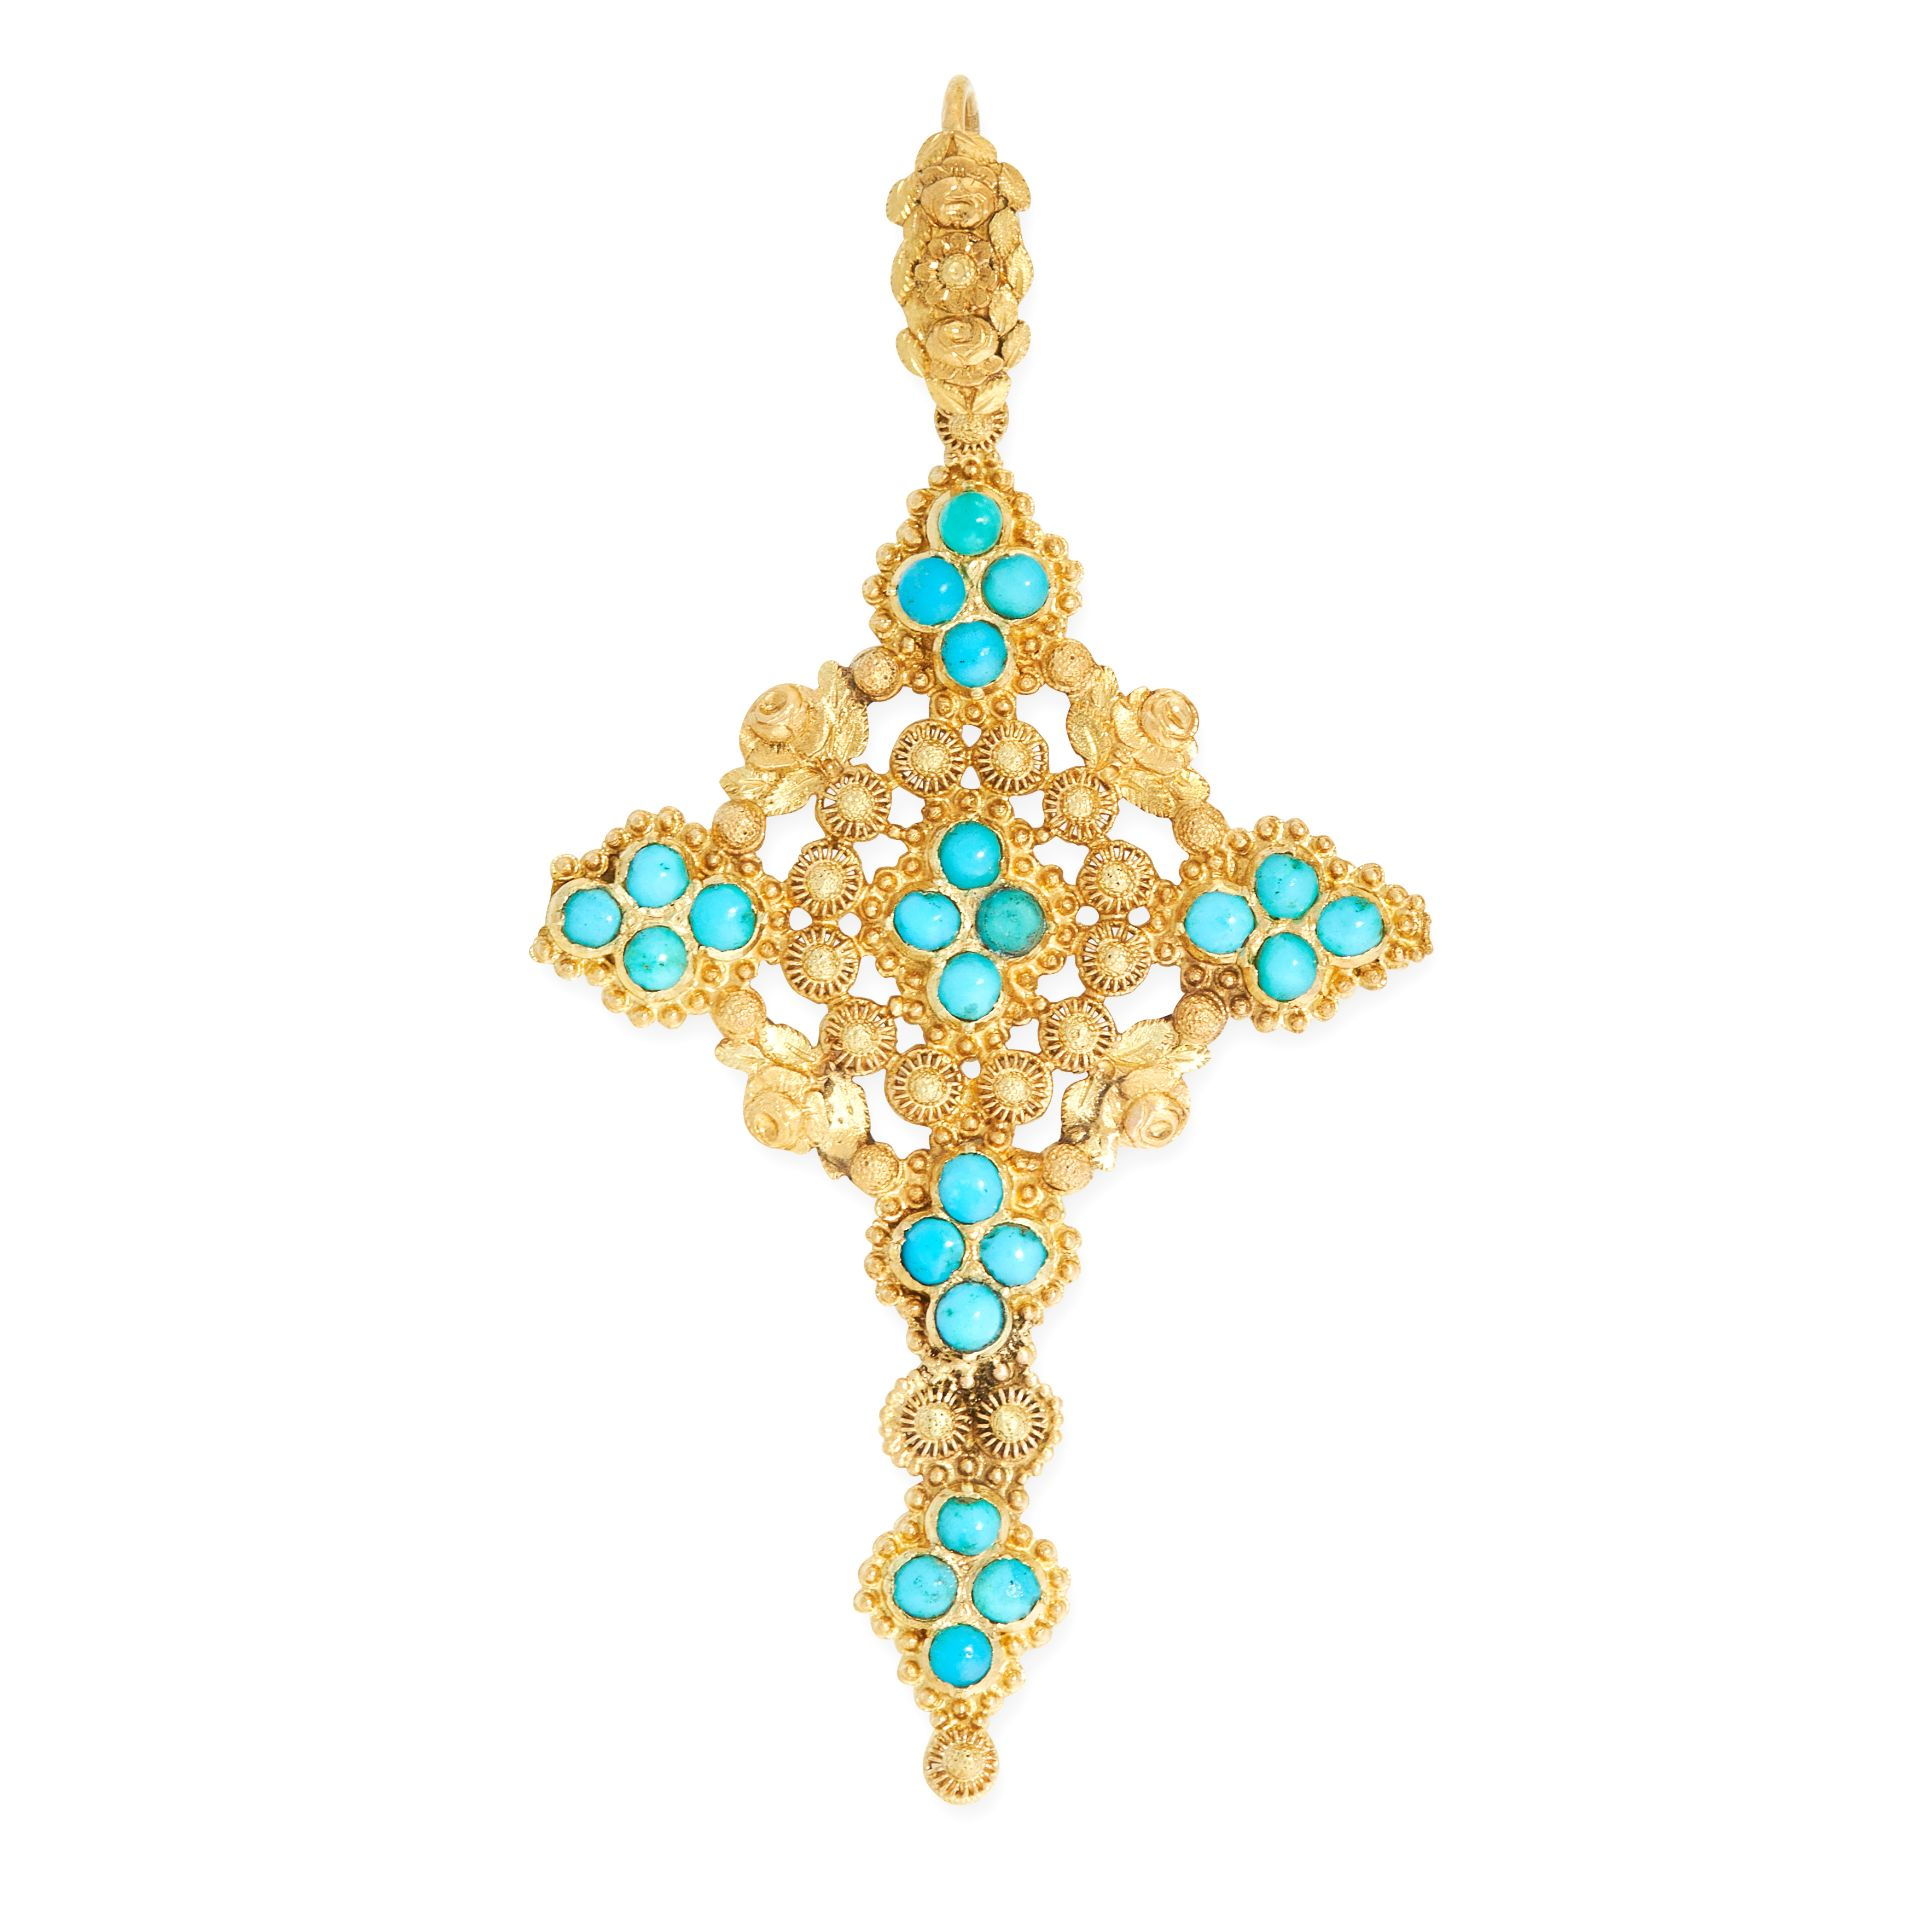 AN ANTIQUE TURQUOISE CROSS PENDANT, 19TH CENTURY in high carat yellow gold, set with clusters of